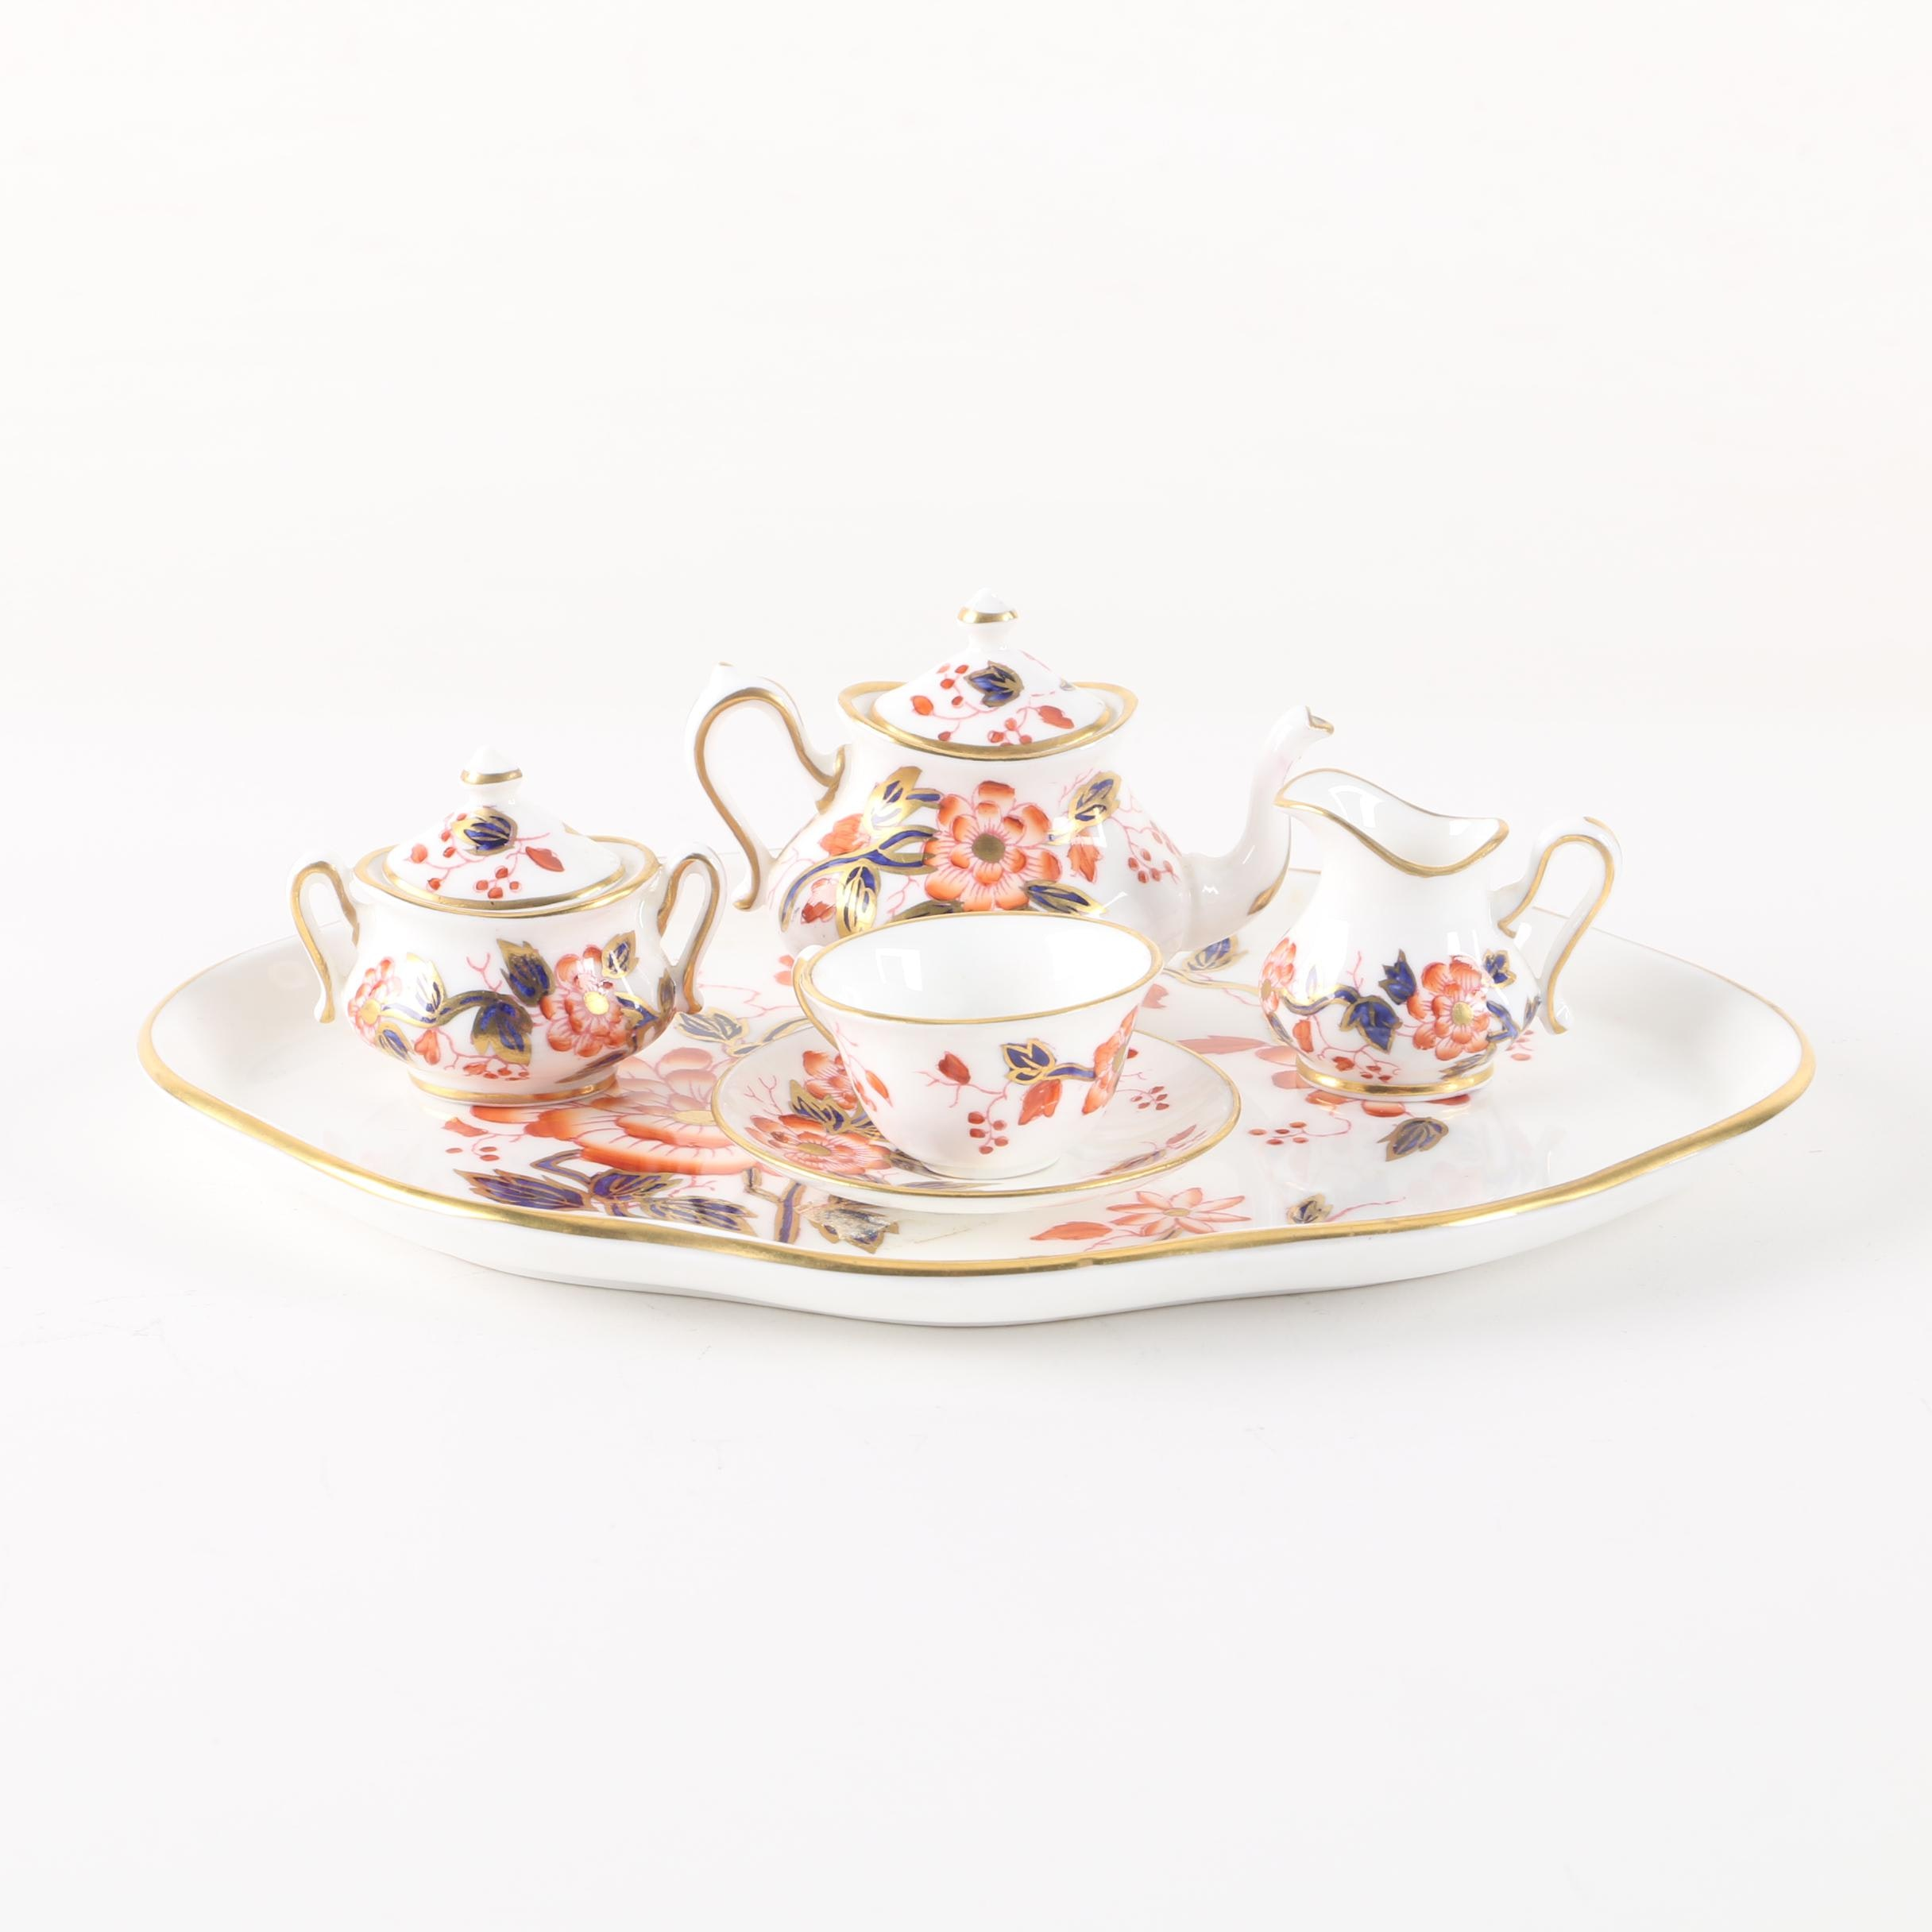 Crown Staffordshire Porcelain Miniature Tea Set